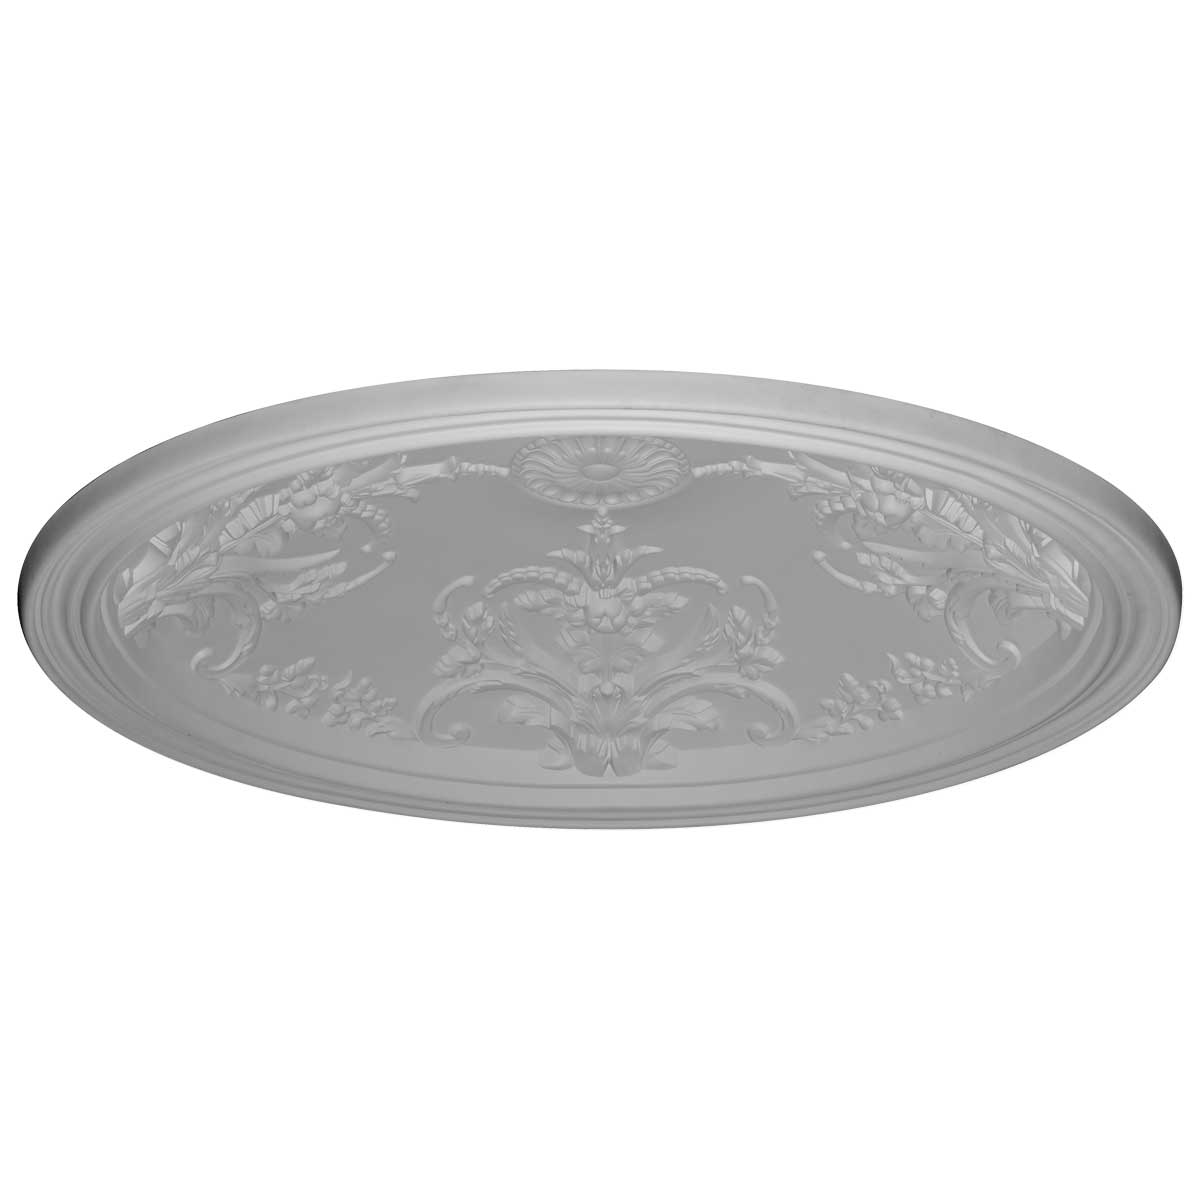 """DOME46BE 45-5/8""""OD x 39-3/8""""ID x 8""""D,Benson Ceiling Dome,3-1/8""""W Trim (39""""Diameter x 8""""D Rough Opening)"""